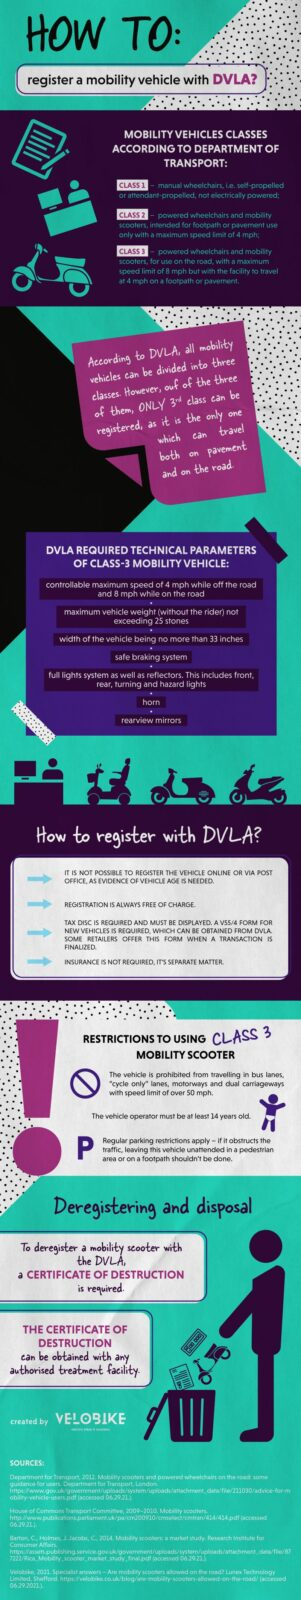 how-to-register-a-mobility-vehicle-with-DVLA